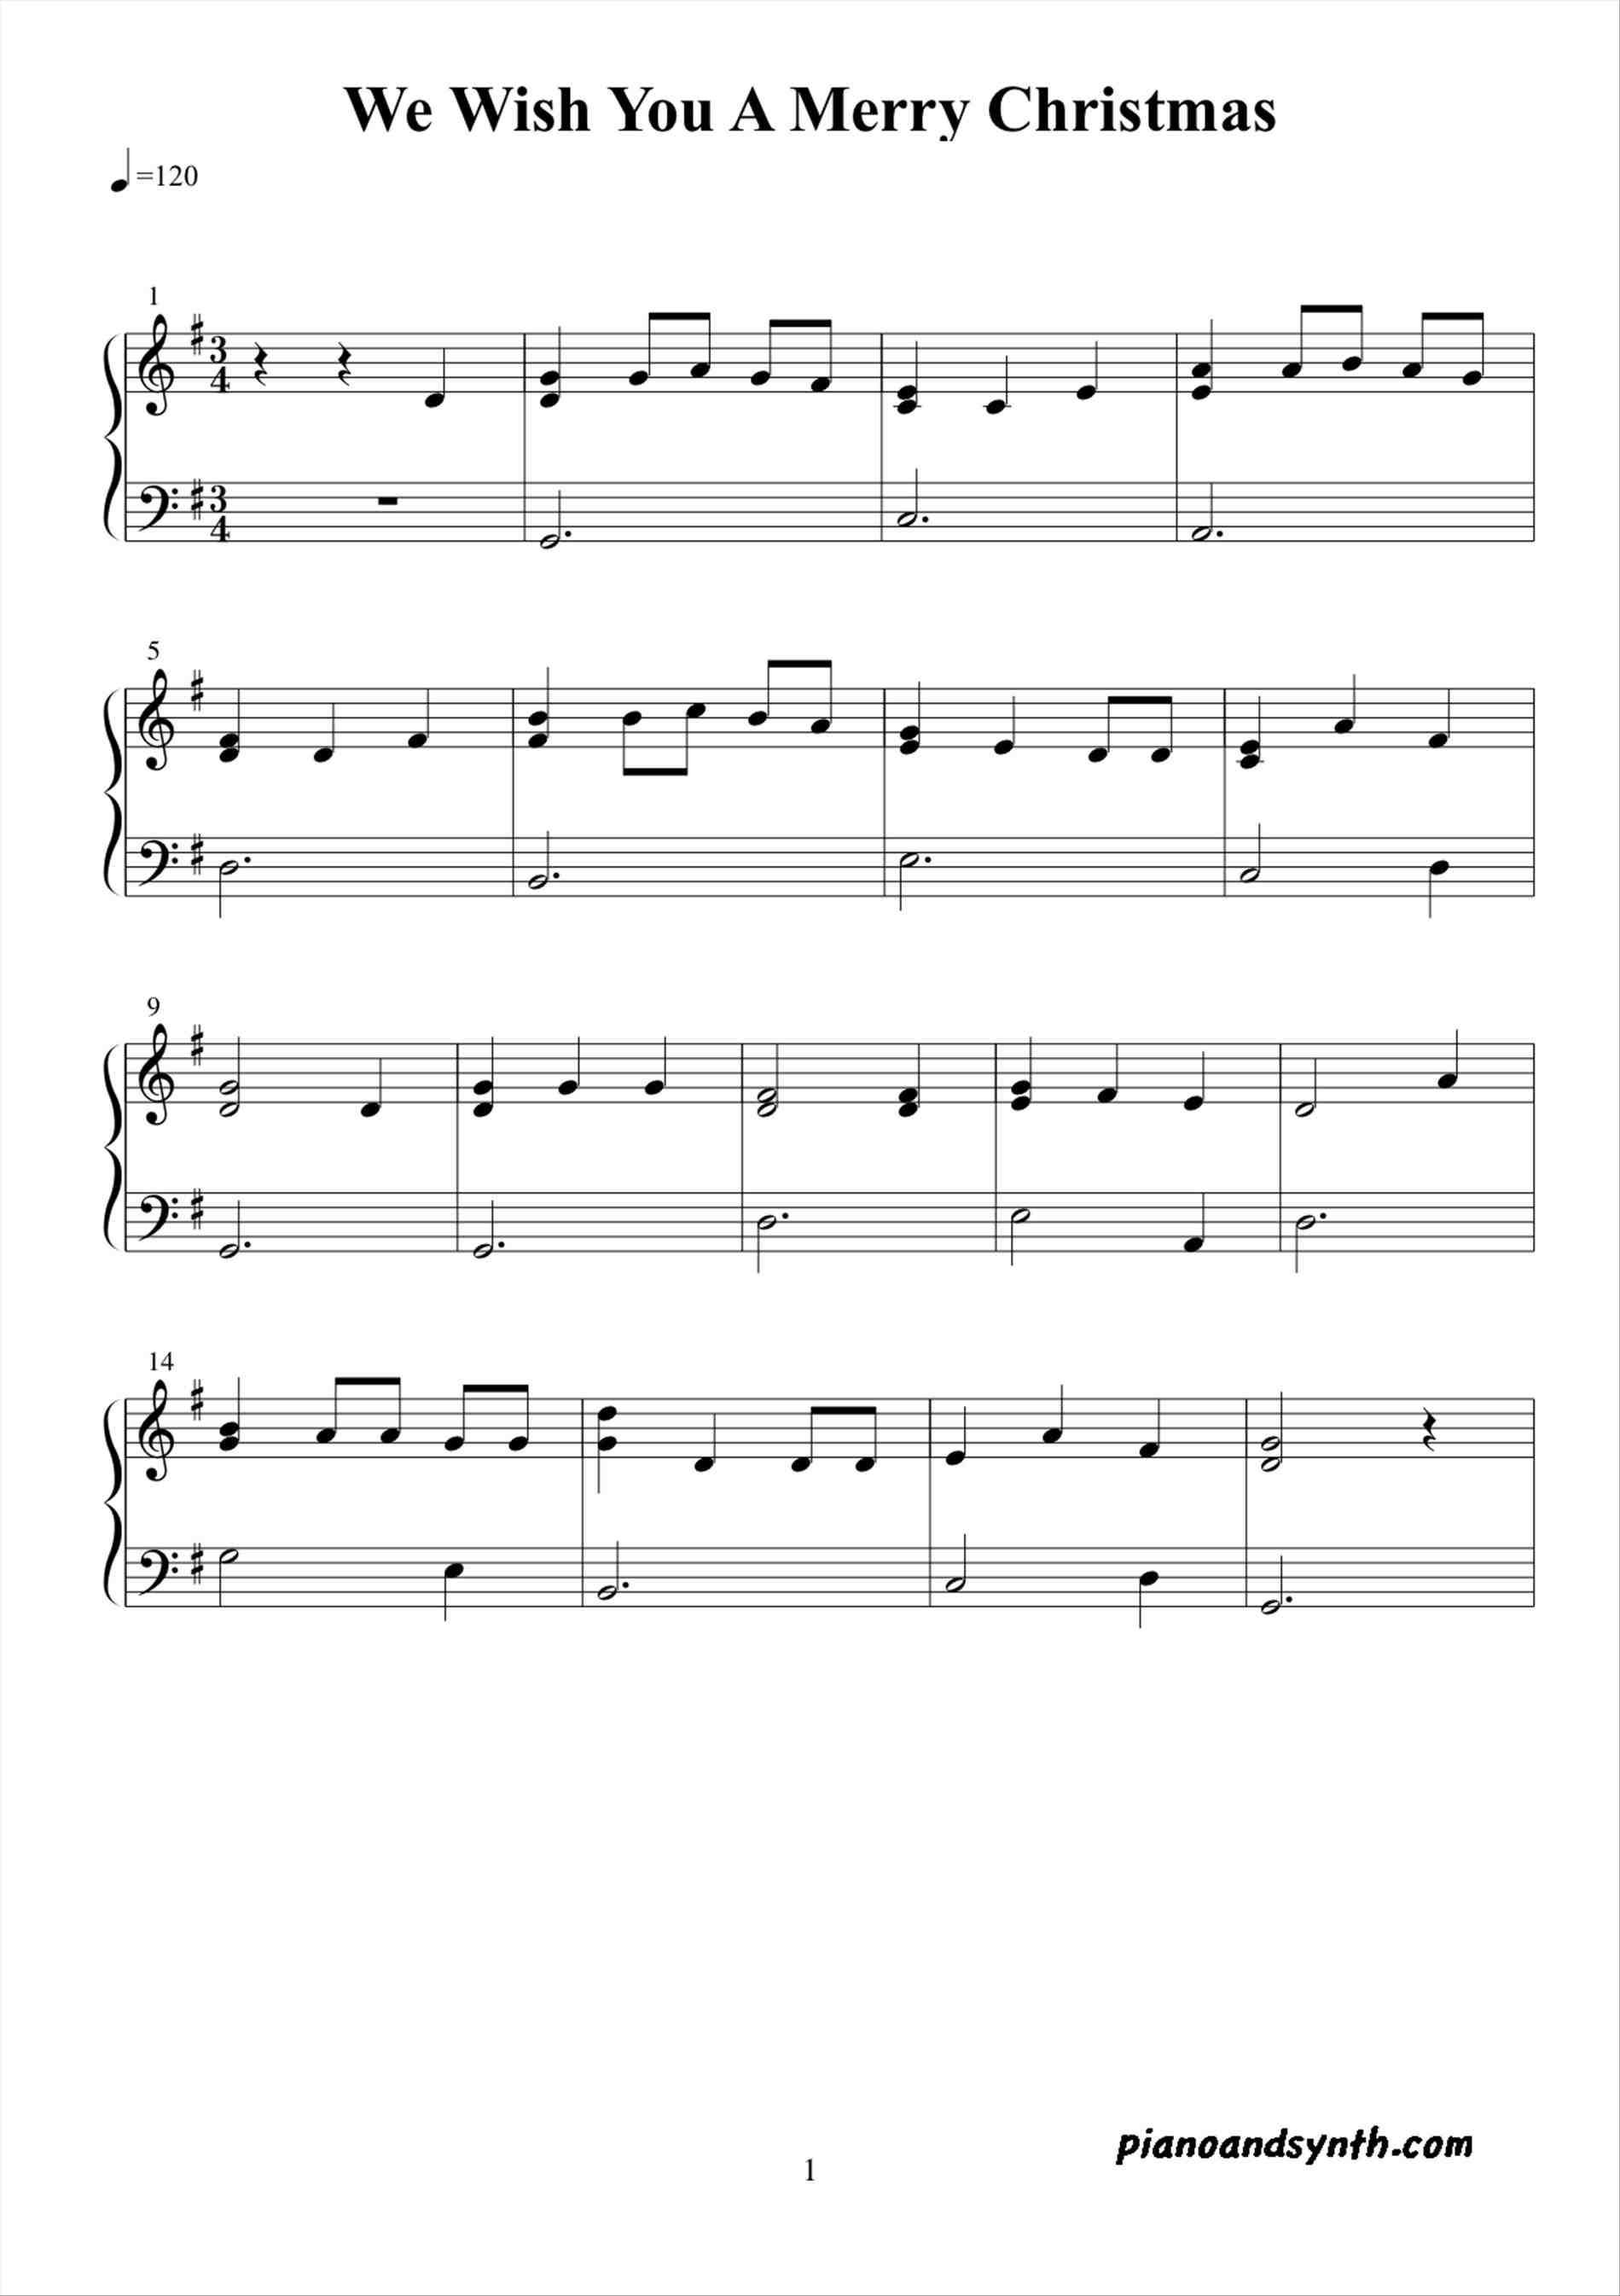 New Post-we wish you a merry christmas sheet music guitar ...